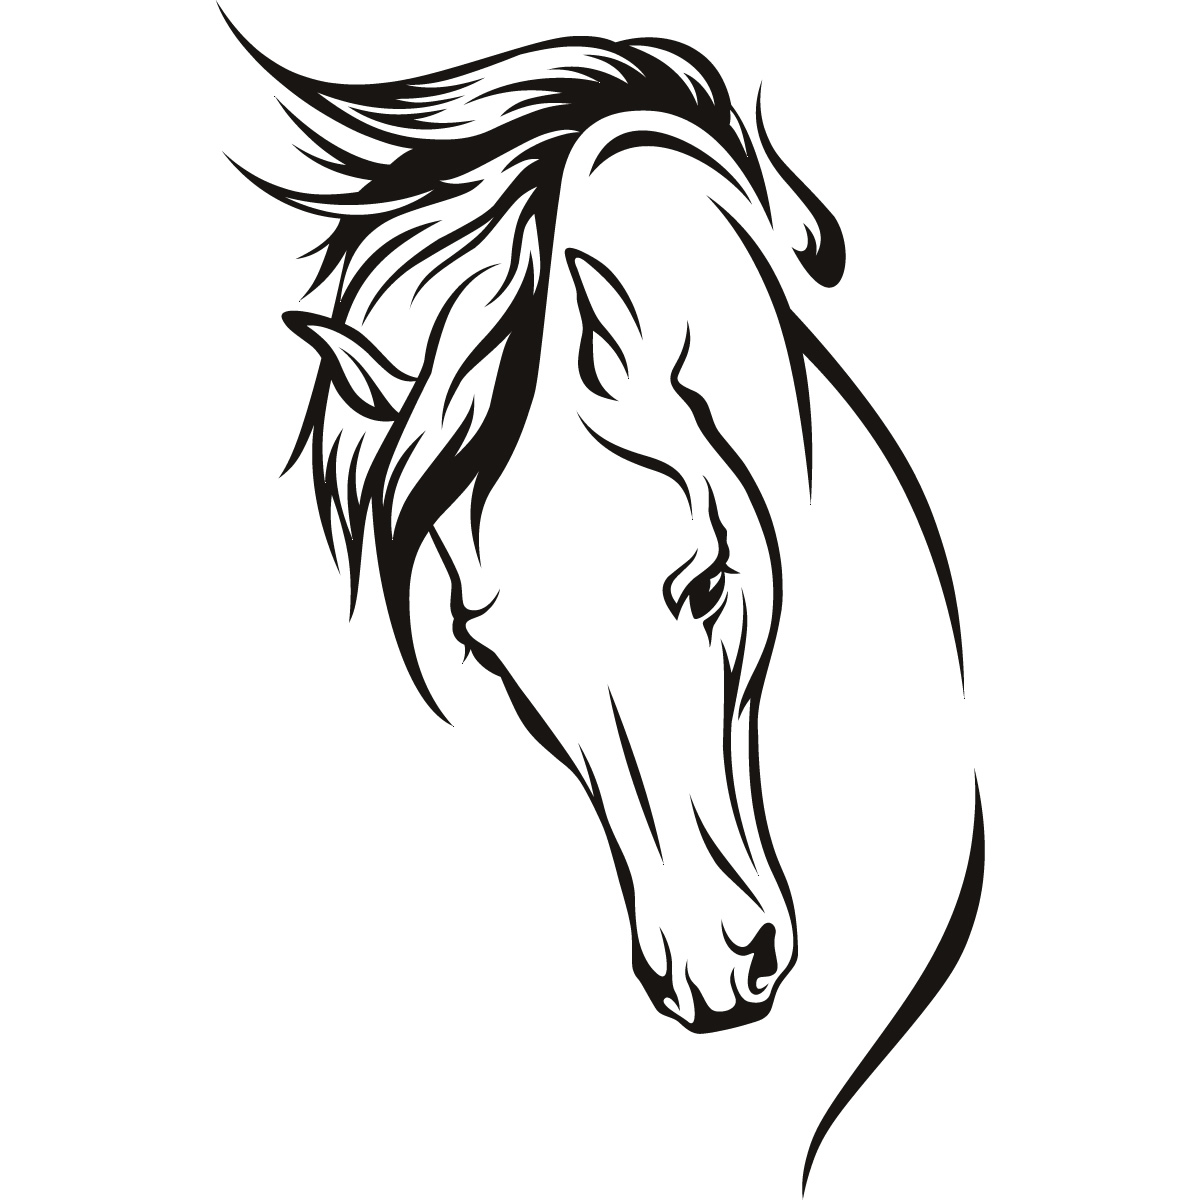 Line Art Horse : Horse line drawing clipart best